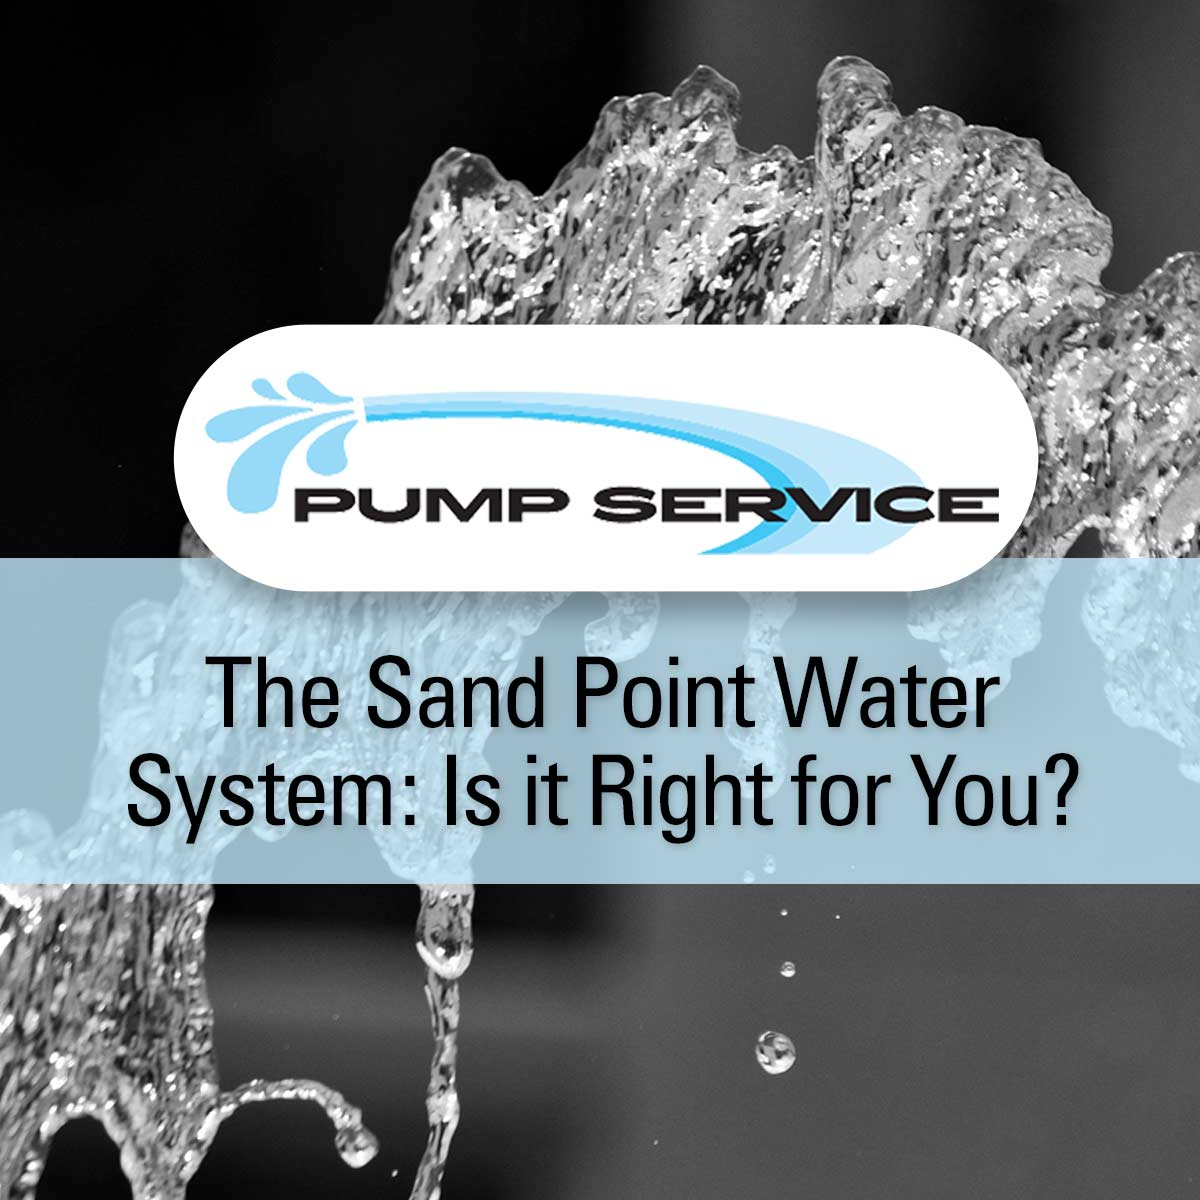 The Sand Point Water System: Is it Right for You?